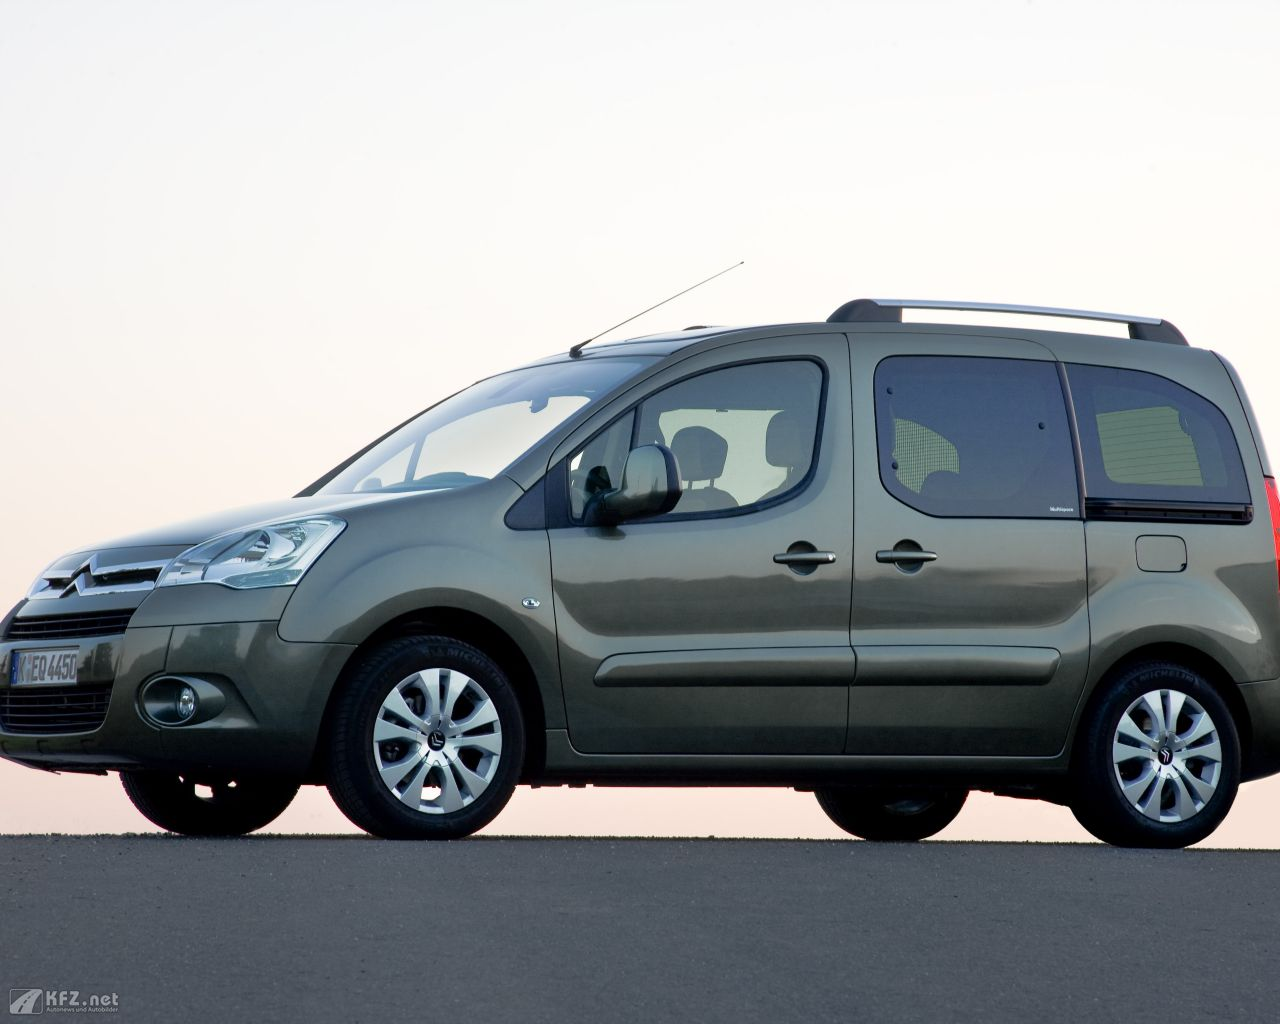 citroen-berlingo-1280x1024-161